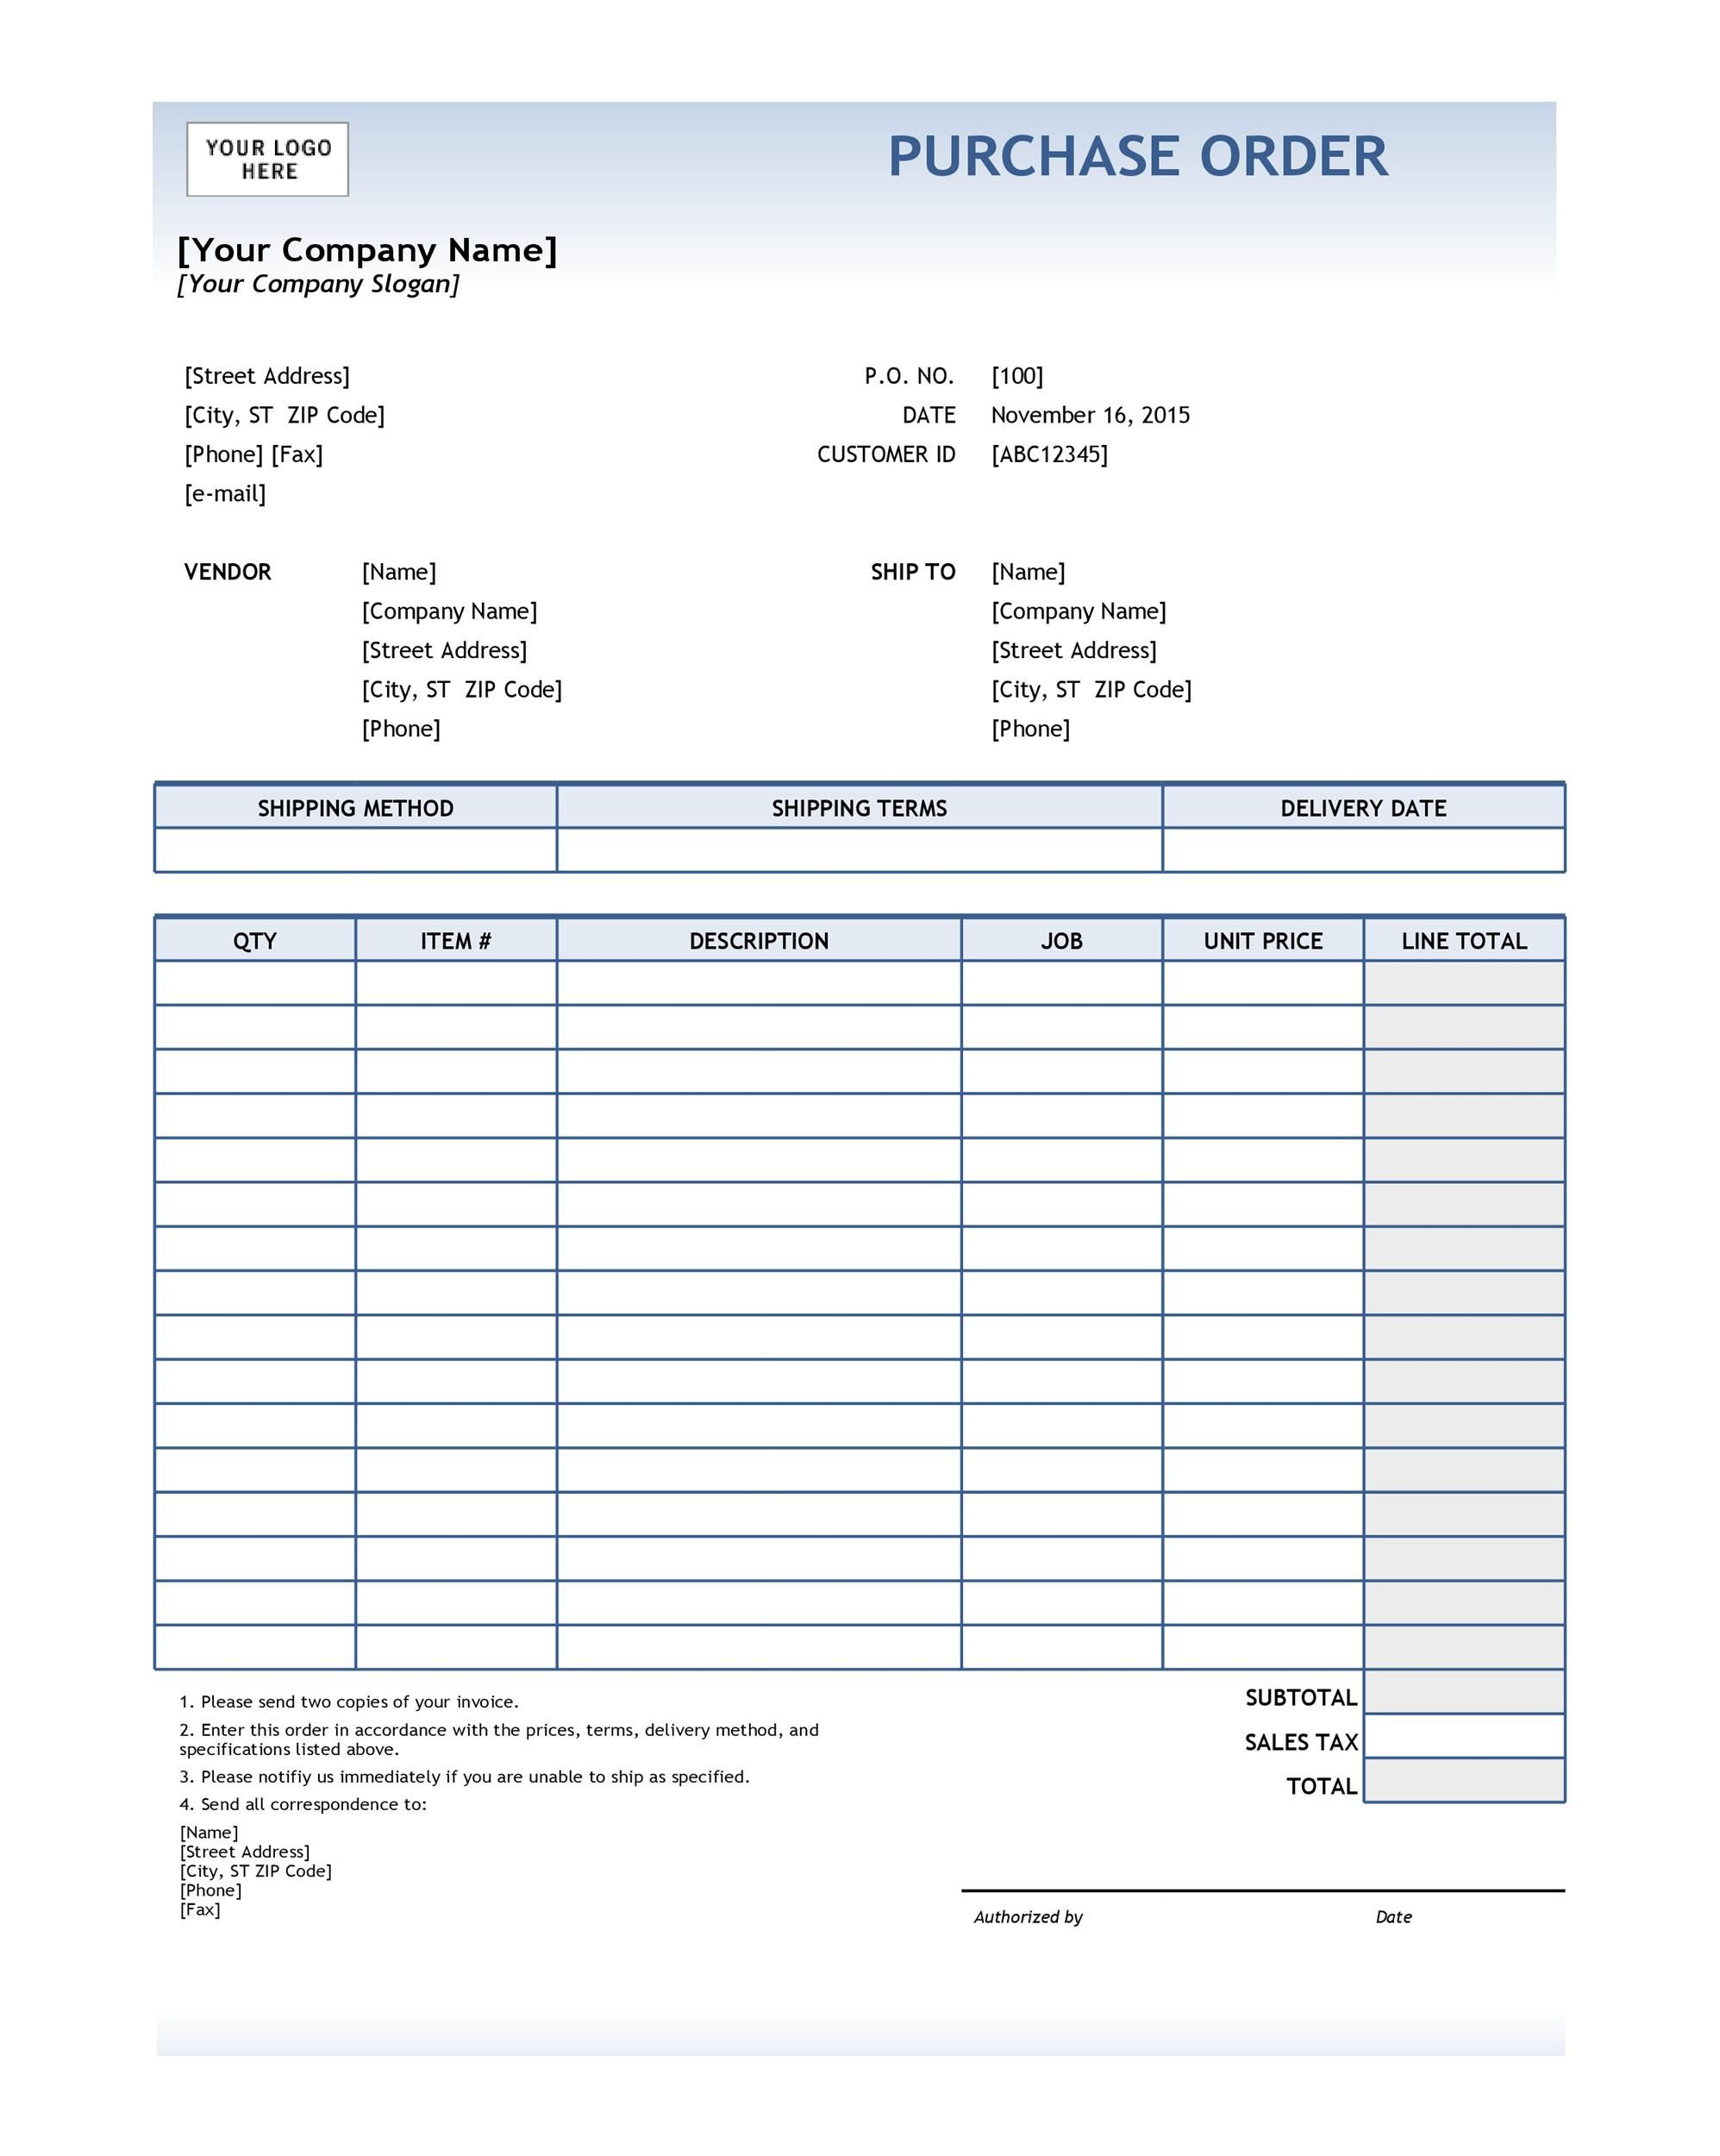 009 Wonderful Heavy Equipment Bill Of Sale Template Highest Clarity Full